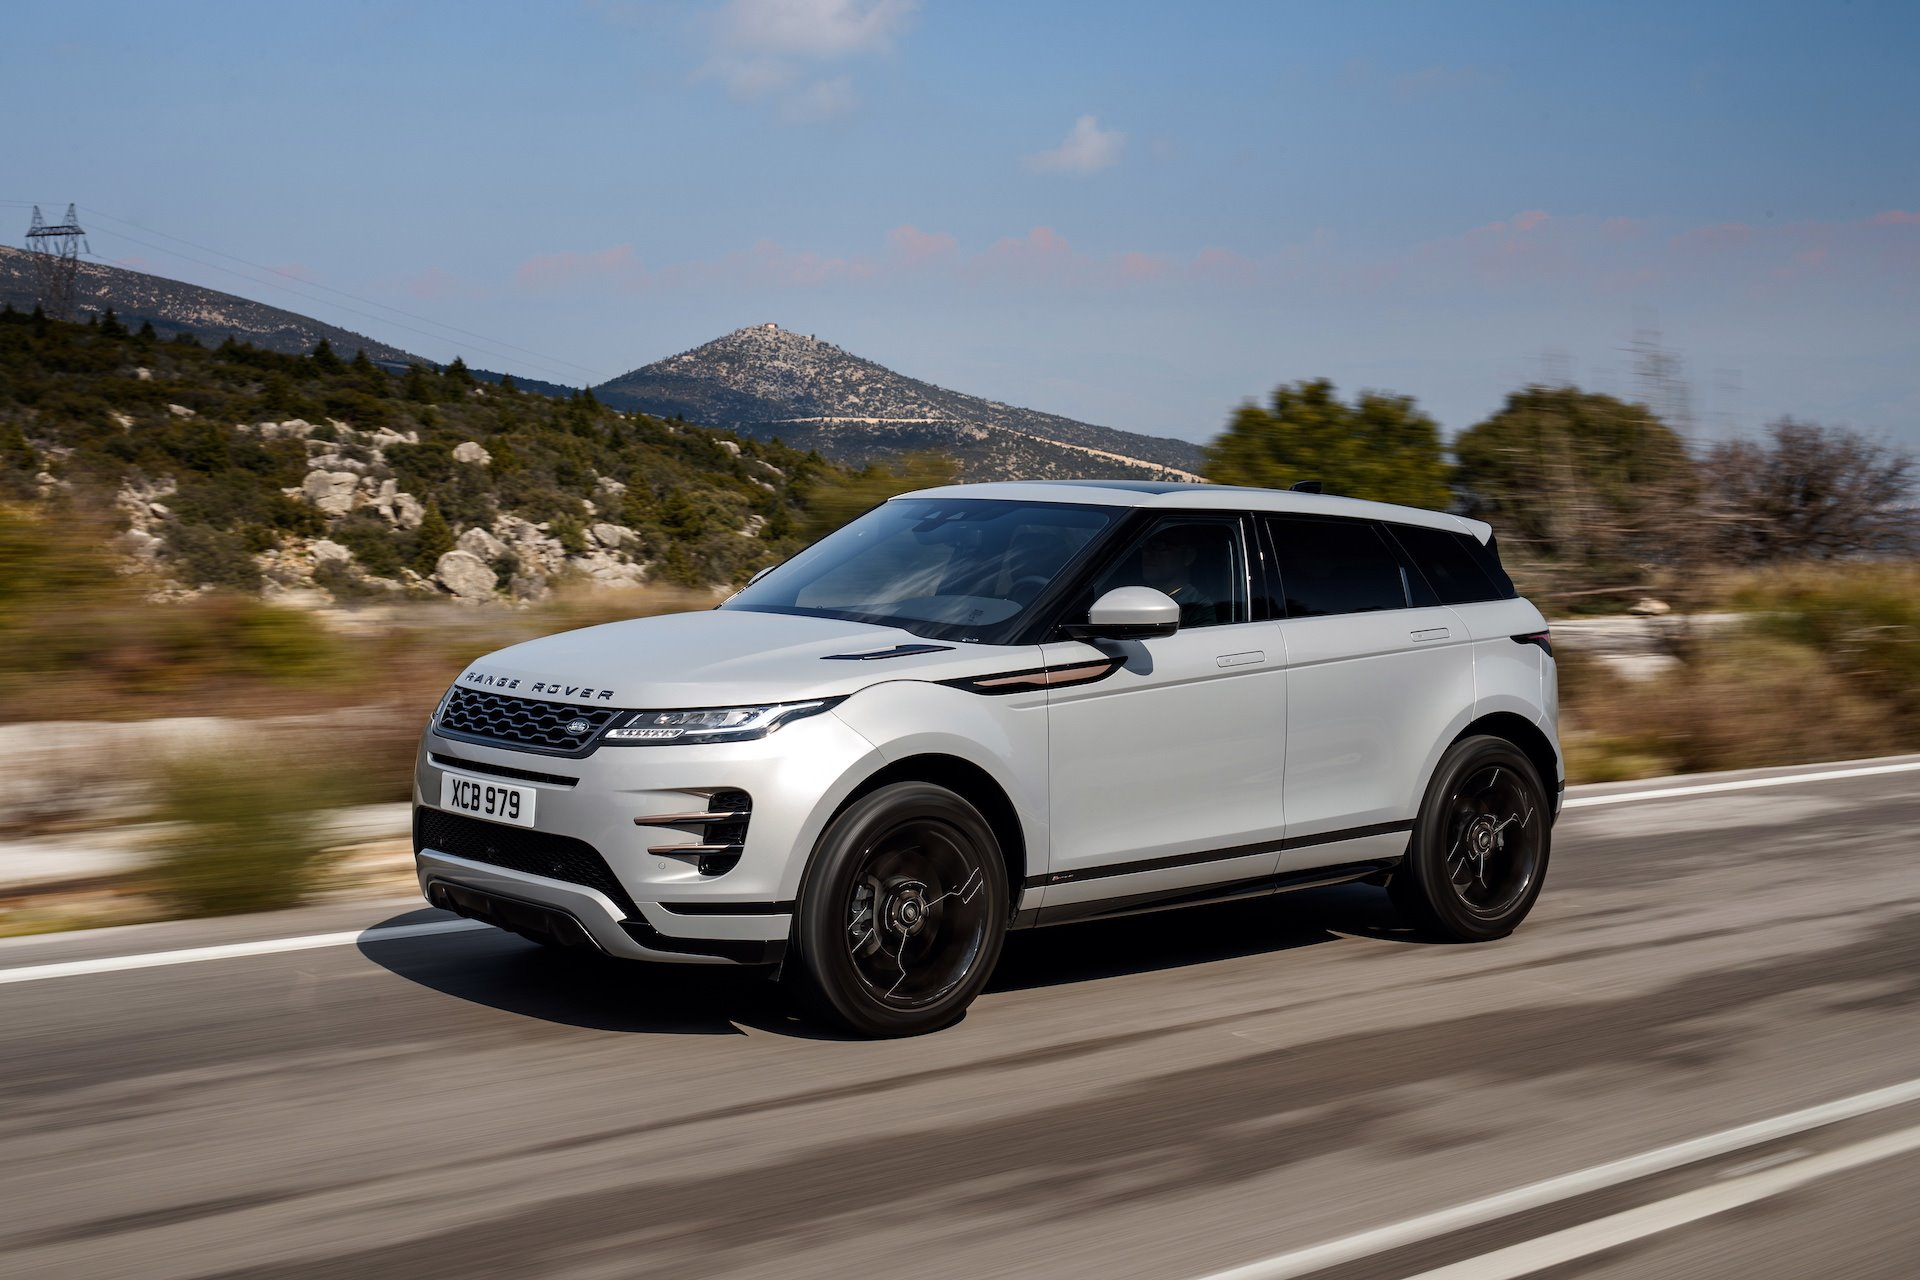 New 2020 Land Rover-Range Rover Evoque Range Rover Evoque SE for sale $47,200 at M and V Leasing in Brooklyn NY 11223 1